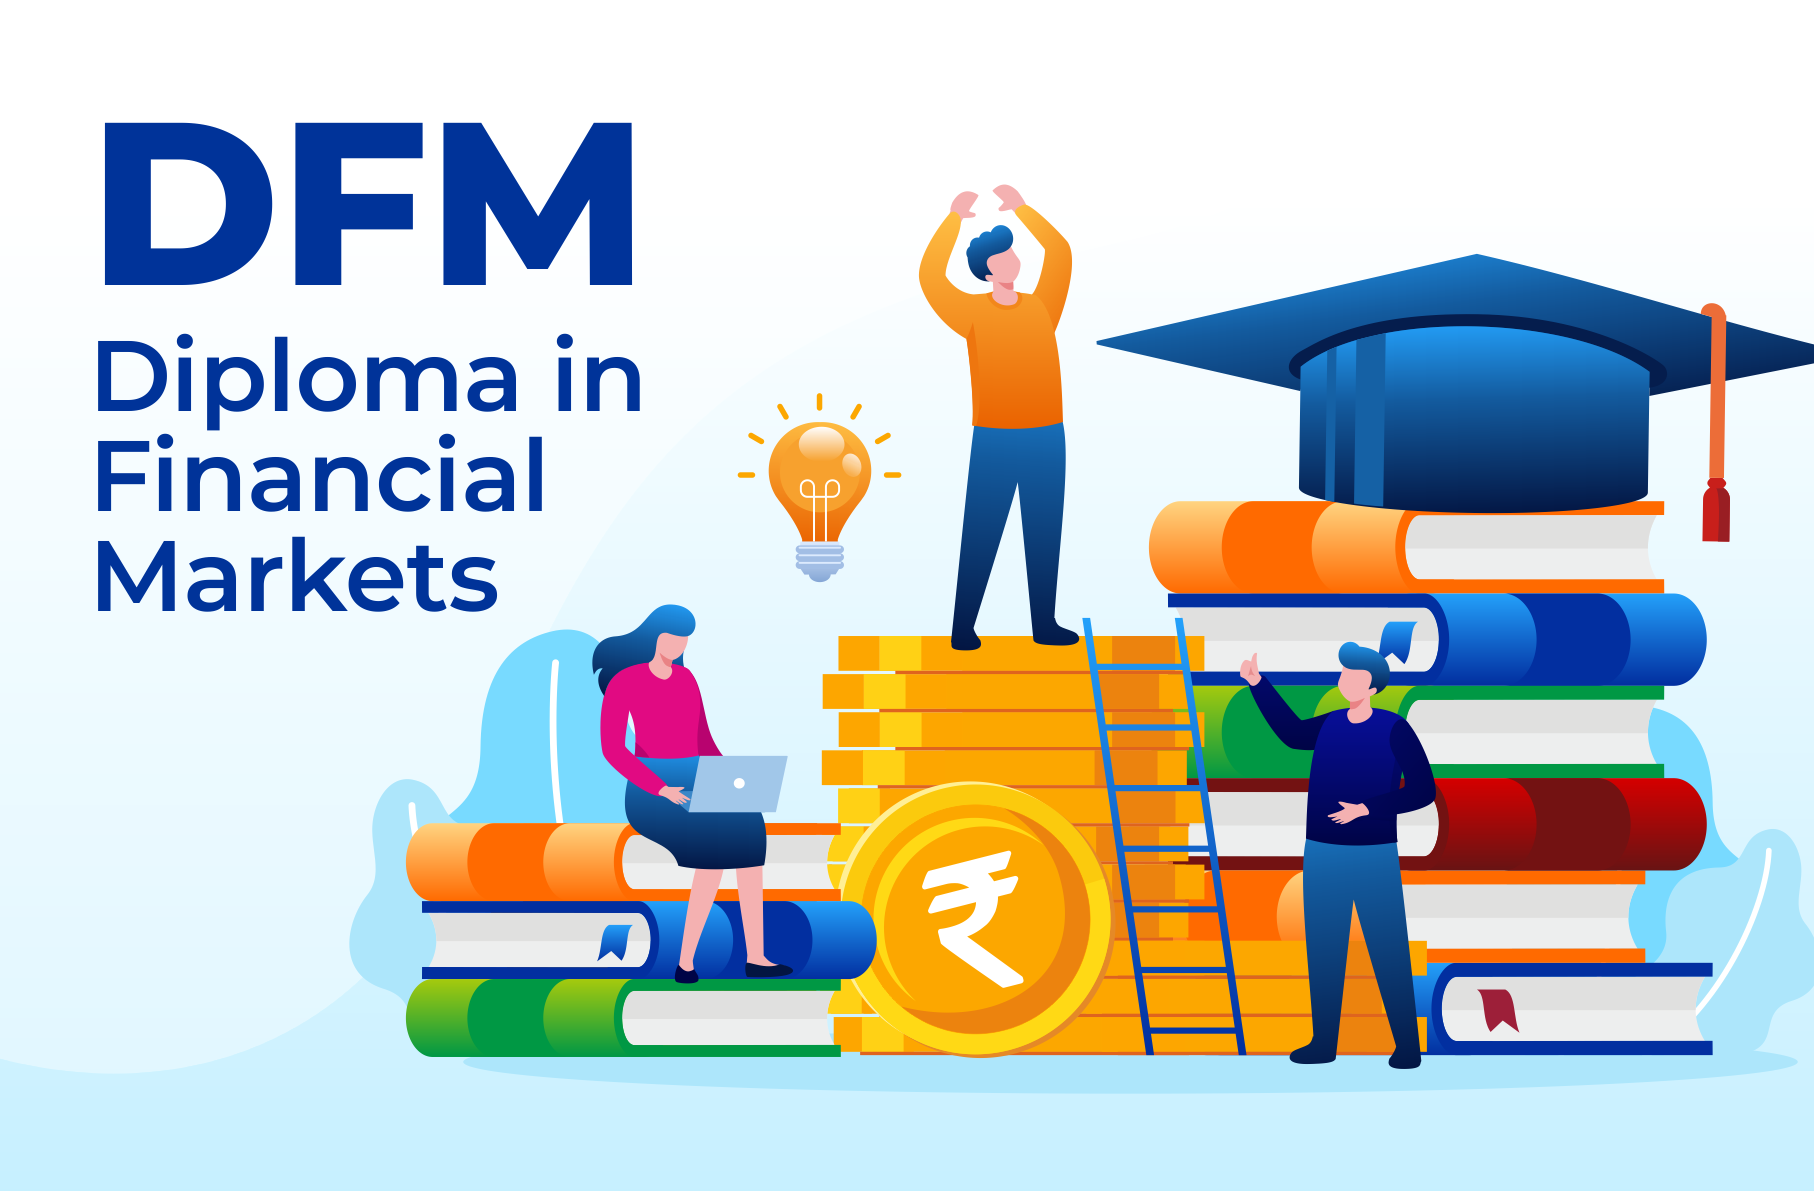 Diploma in Financial Markets (DFM)